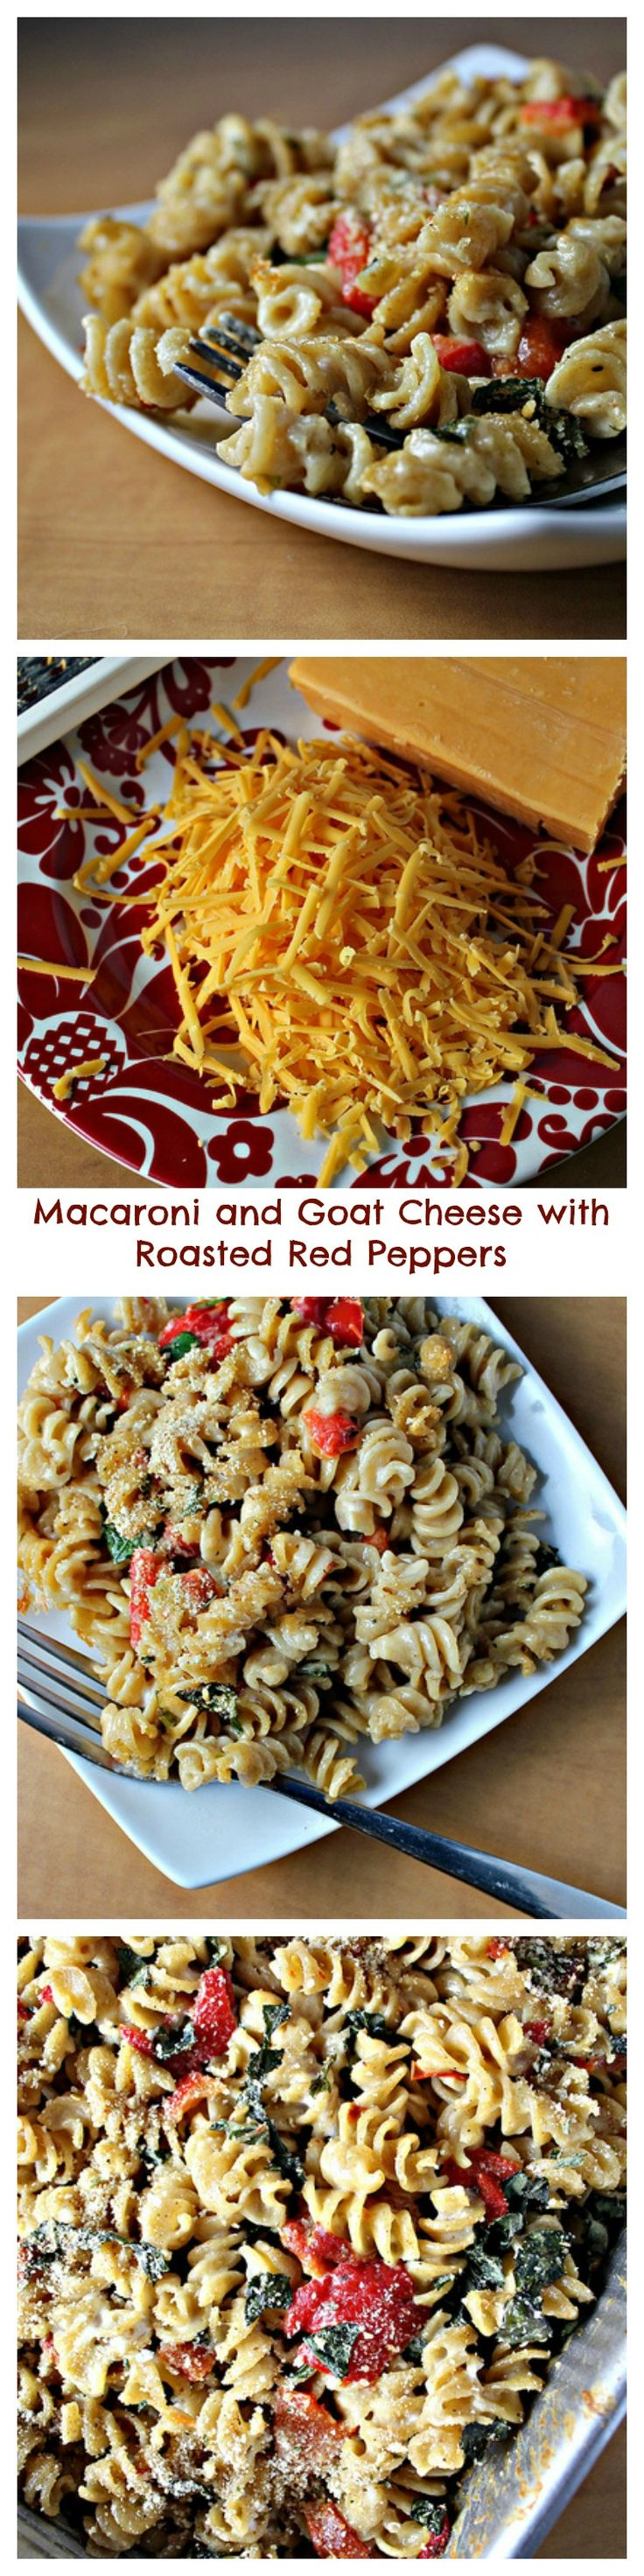 macaroni and goat cheese with roasted red peppers